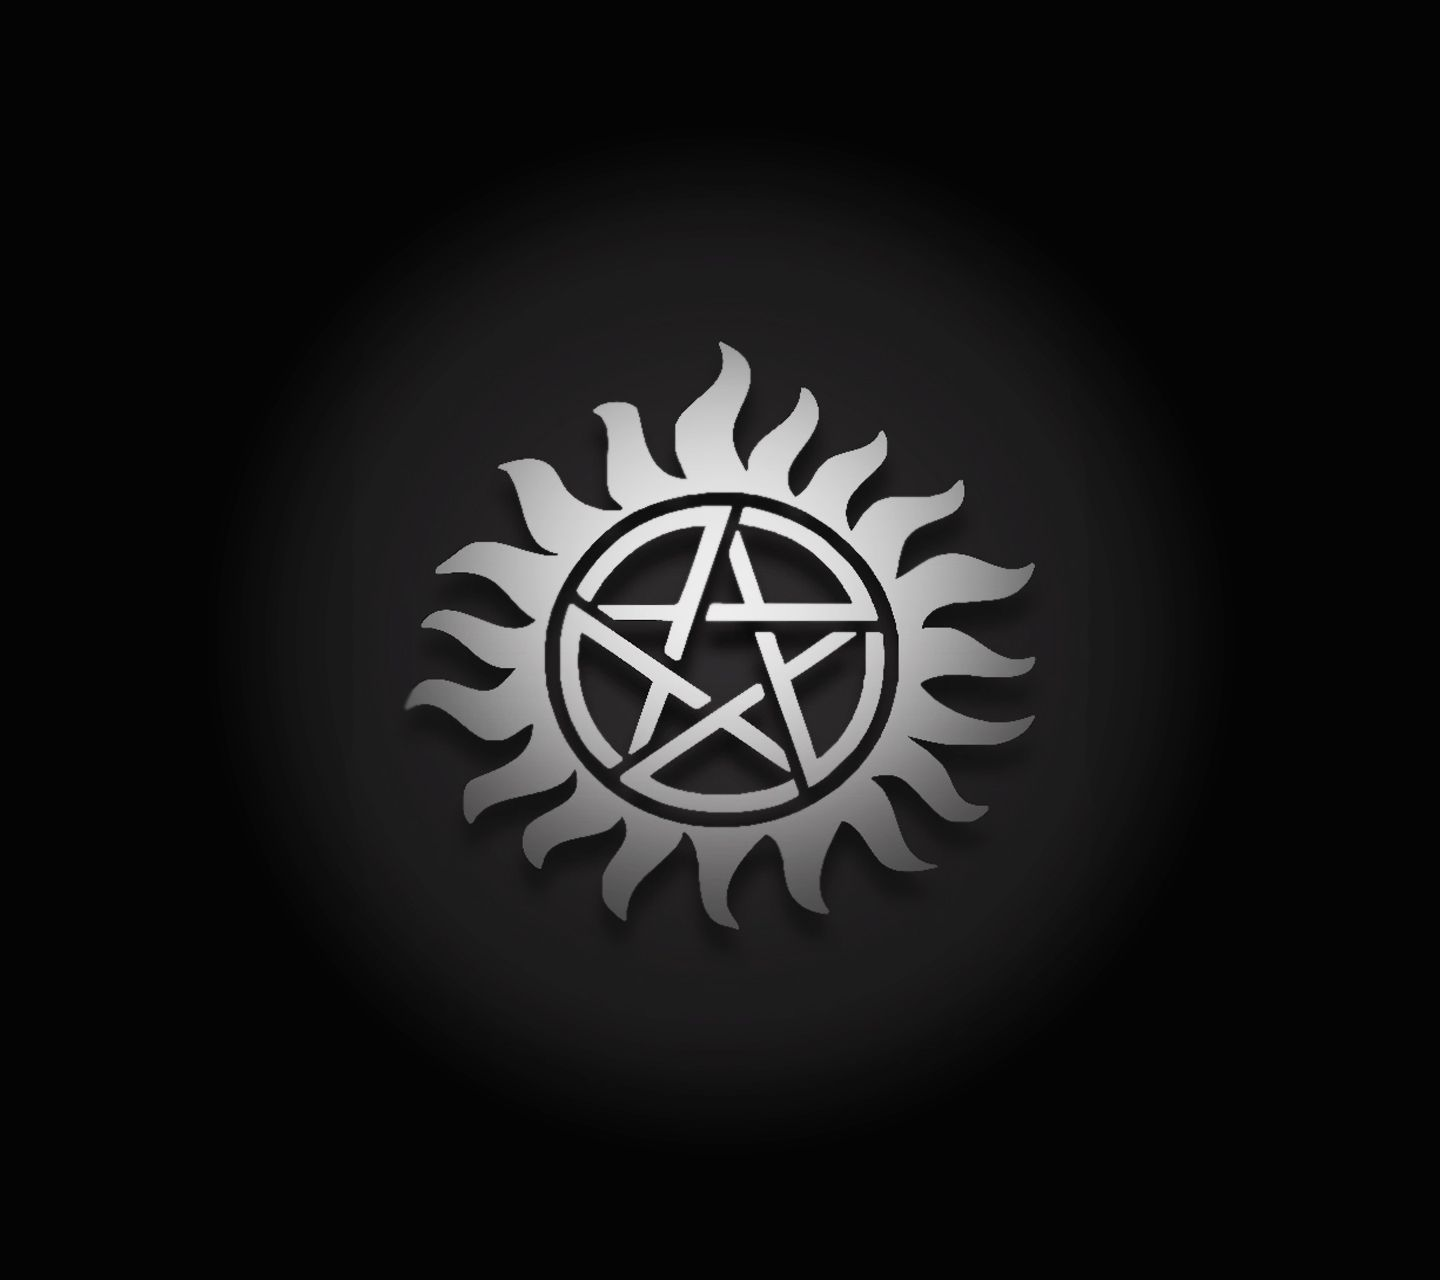 Tattoo Wallpapers Full Hd Iphone: I Couldn't Find Any Anti-possession Sigil Wallpapers For